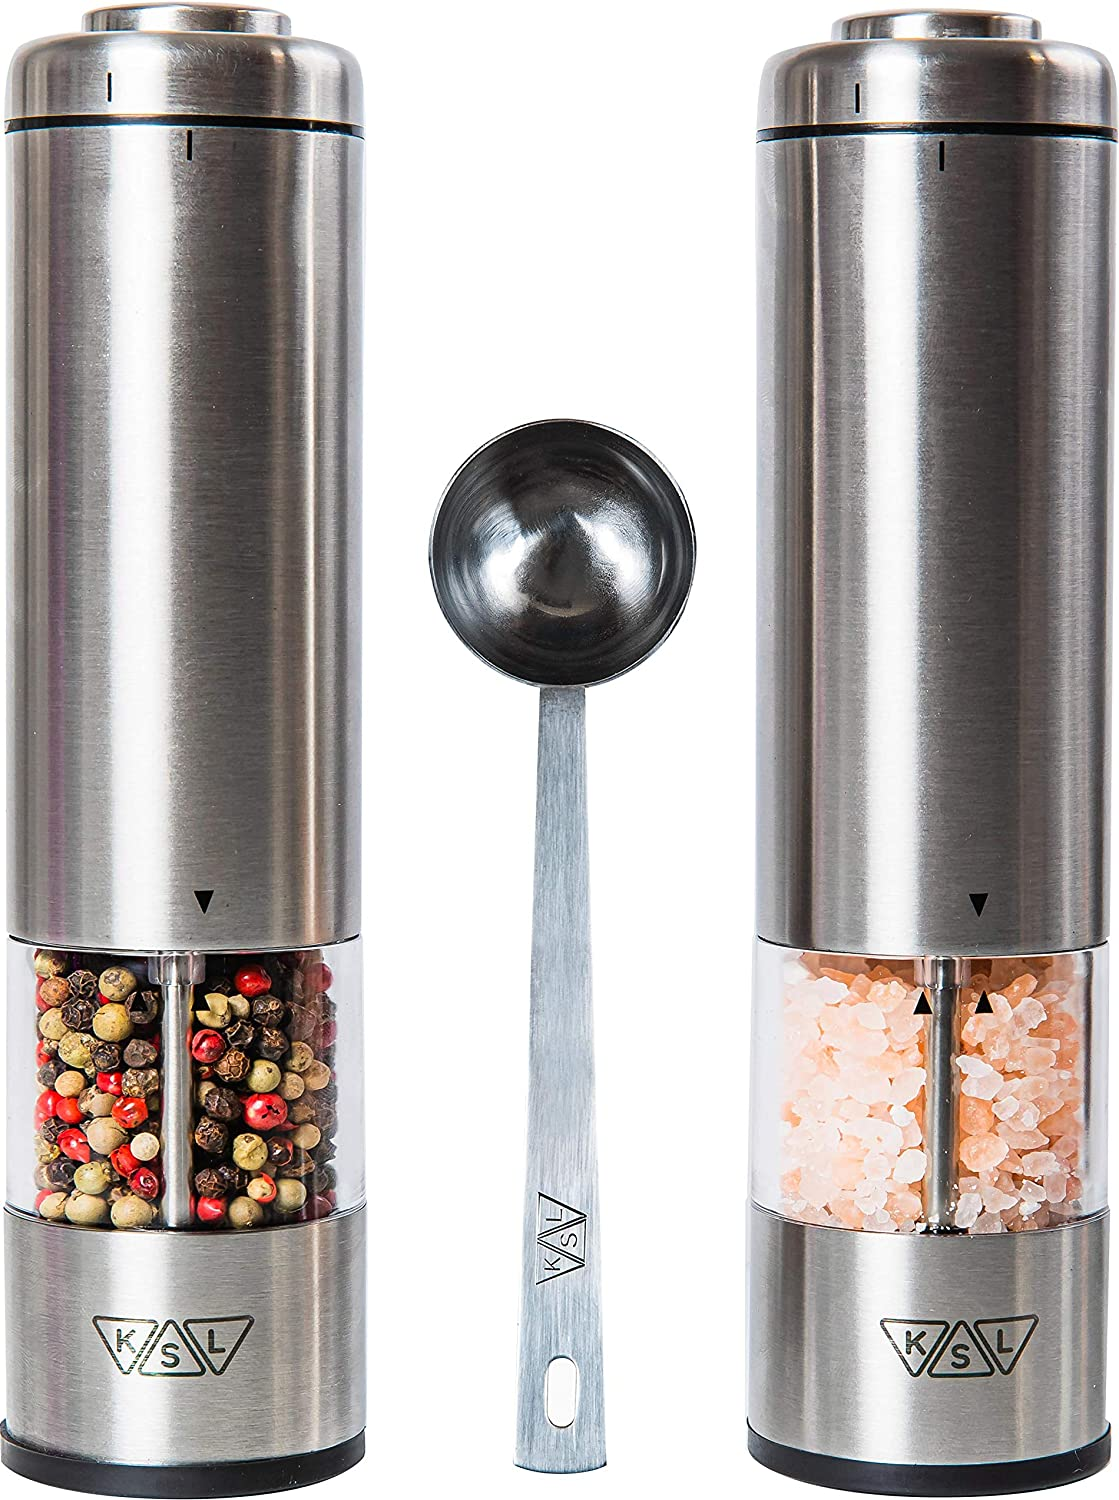 Ksl Electric Salt And Pepper Grinder Set Batteries Included Automatic Adjustable Shakers Stainless Steel Powered Spice Mills Battery Operated Kitchen Peppermills Light Housewarming Gift Idea Amazon Ca Home Kitchen